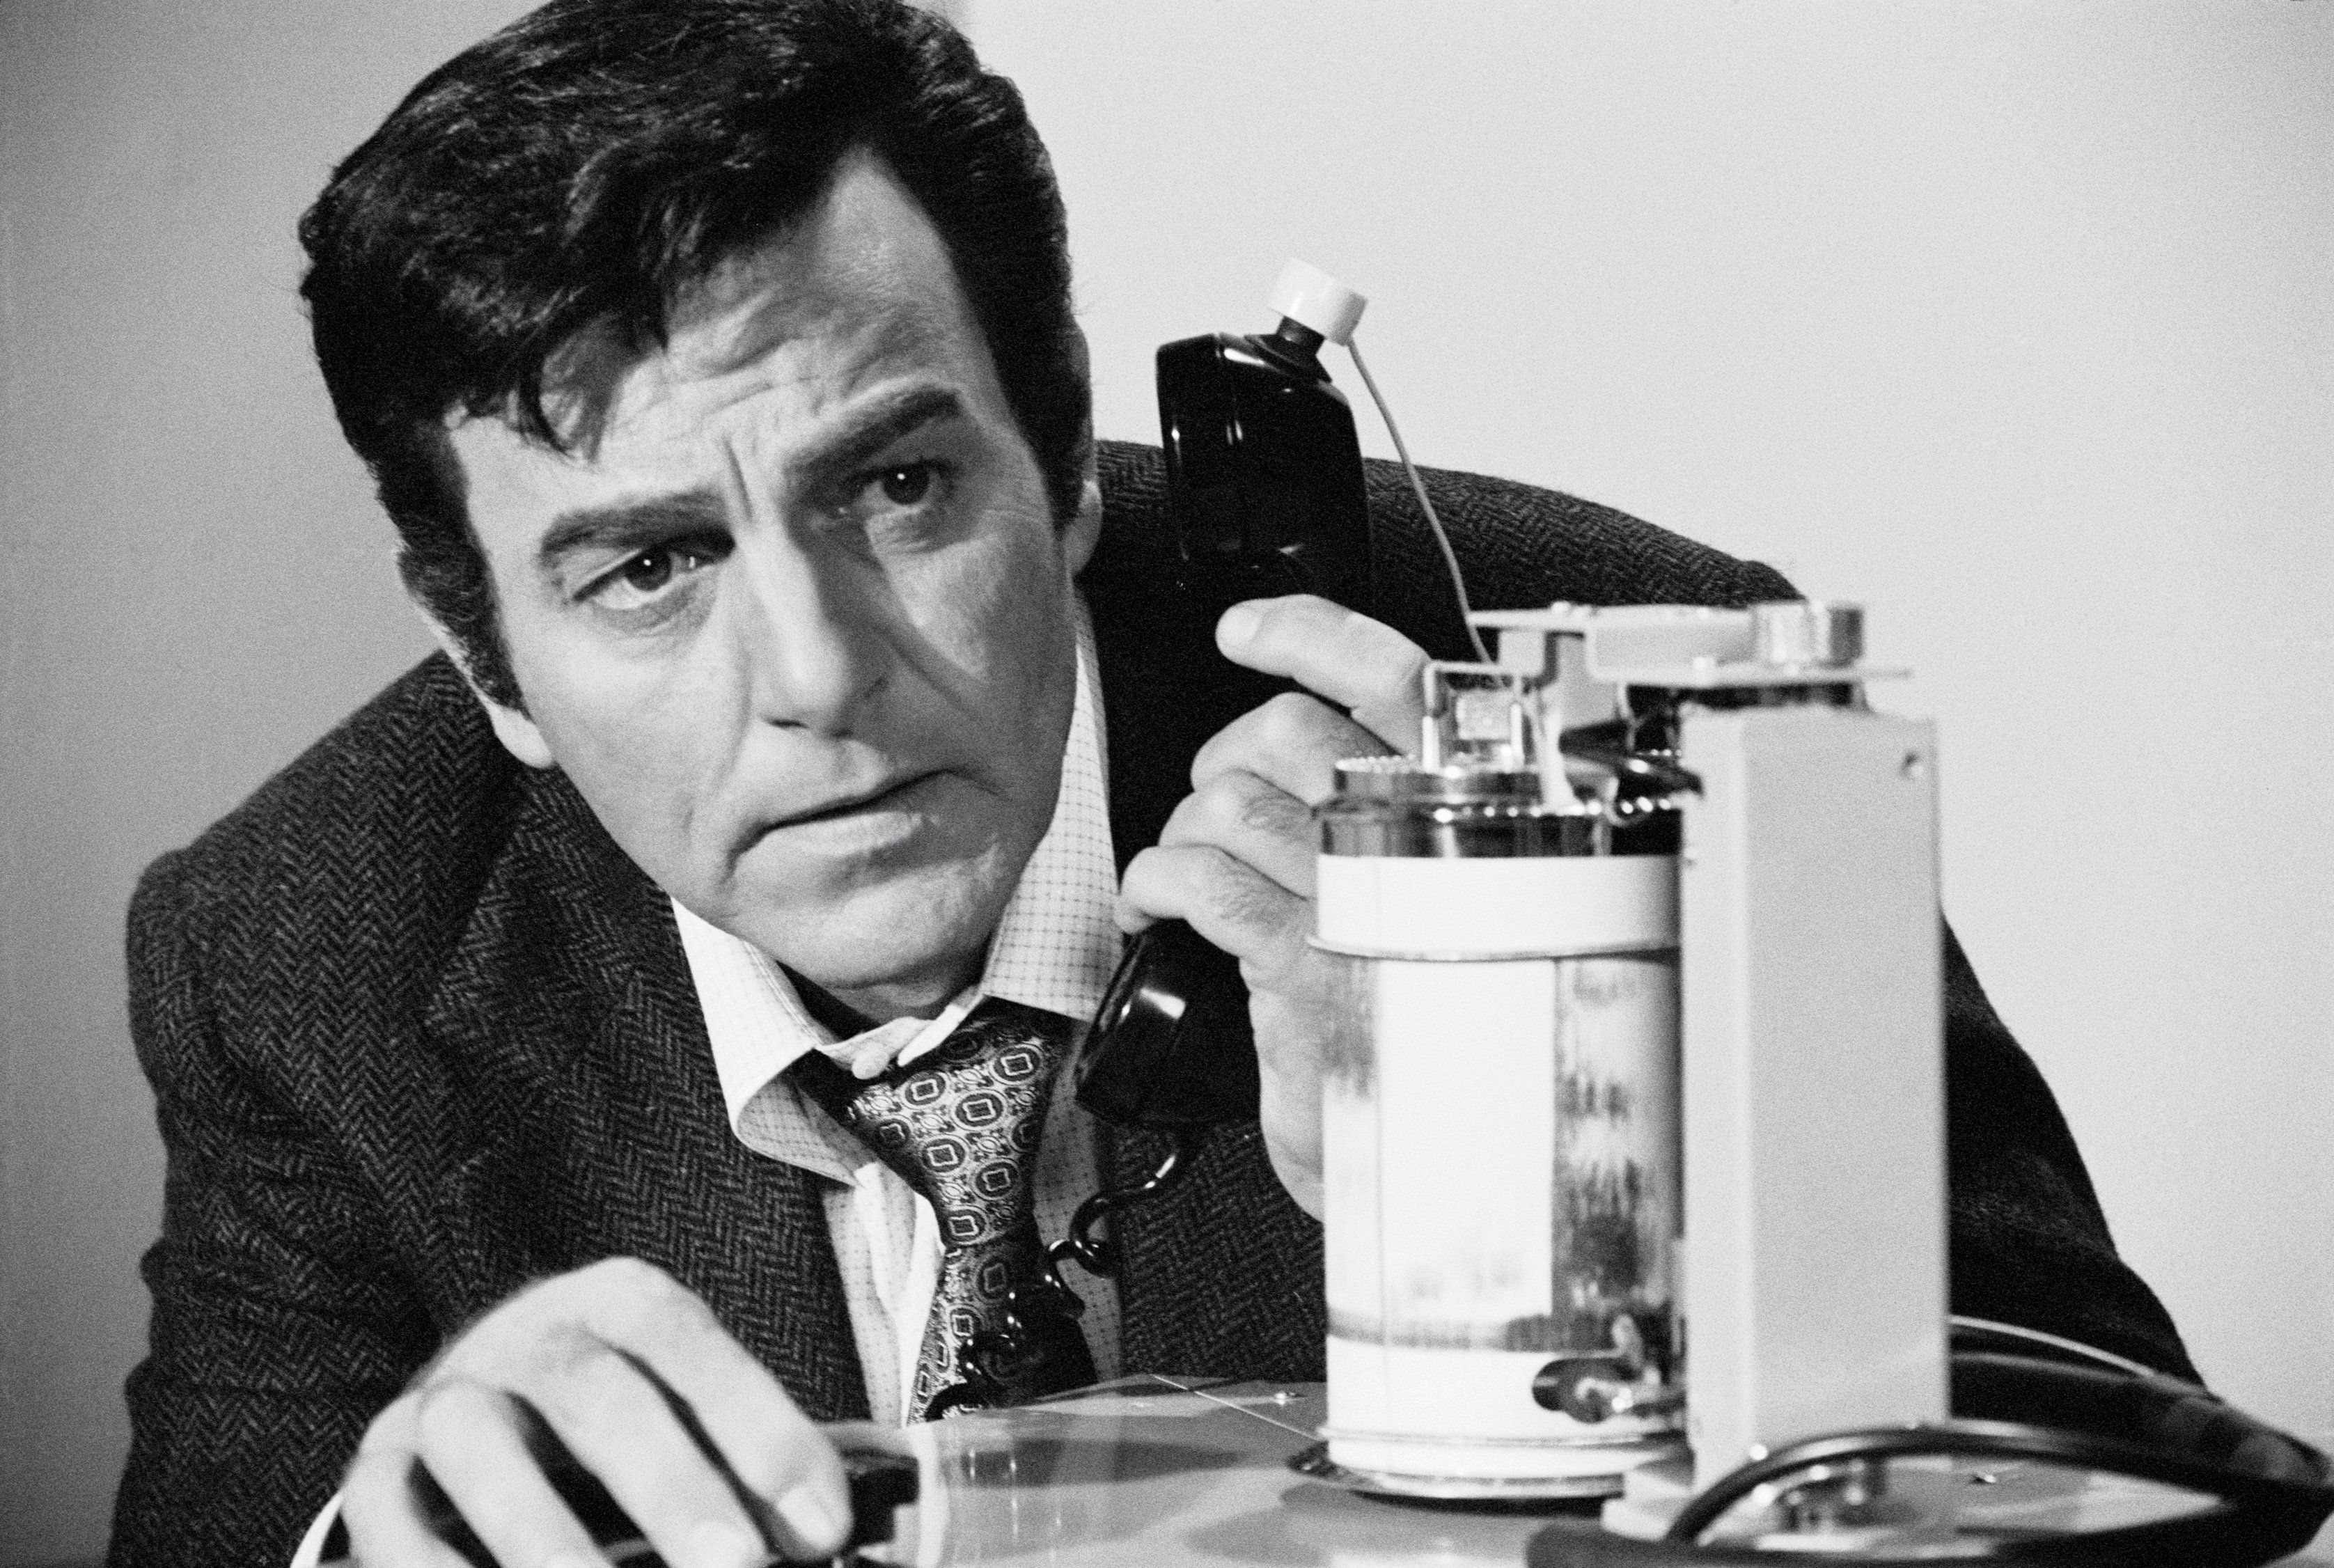 """Mike Connors found stardom on television playing the title role in the popular, long-running private eye series """"Mannix"""